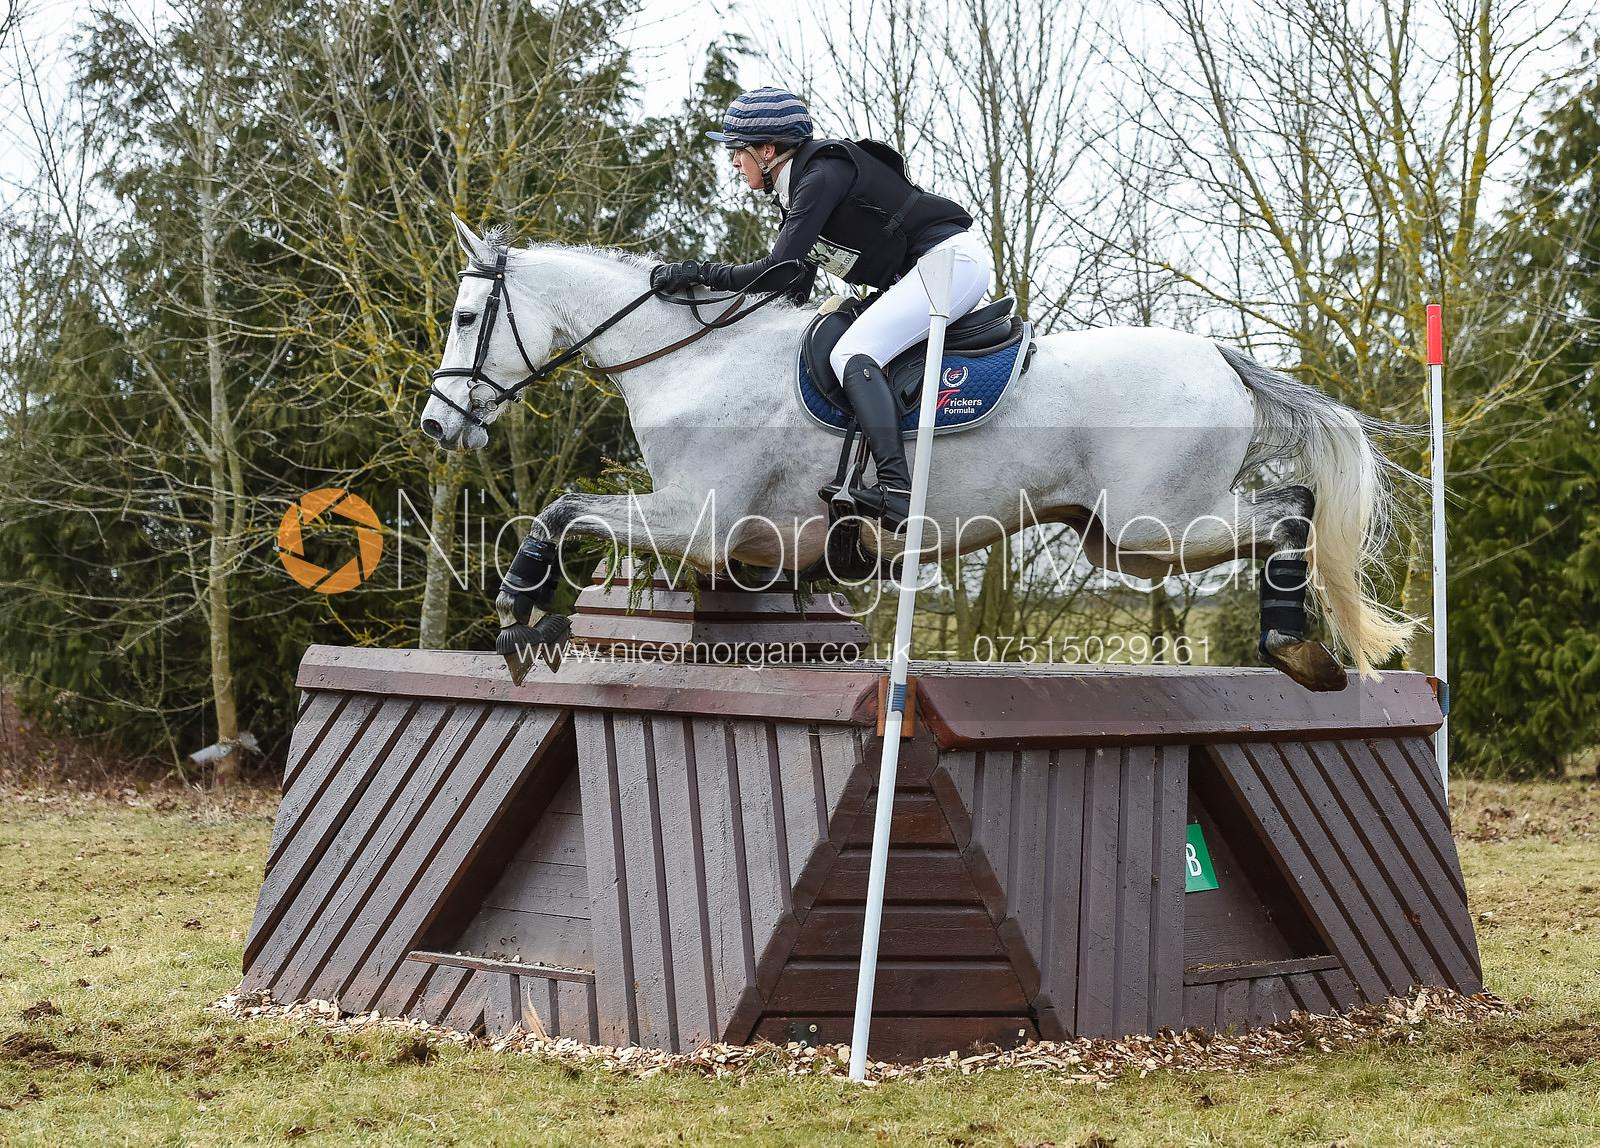 Logan Duffort and VOLTAGE DE LA NOUEE - Intermediate Sections - Oasby Horse Trials, March 2018.